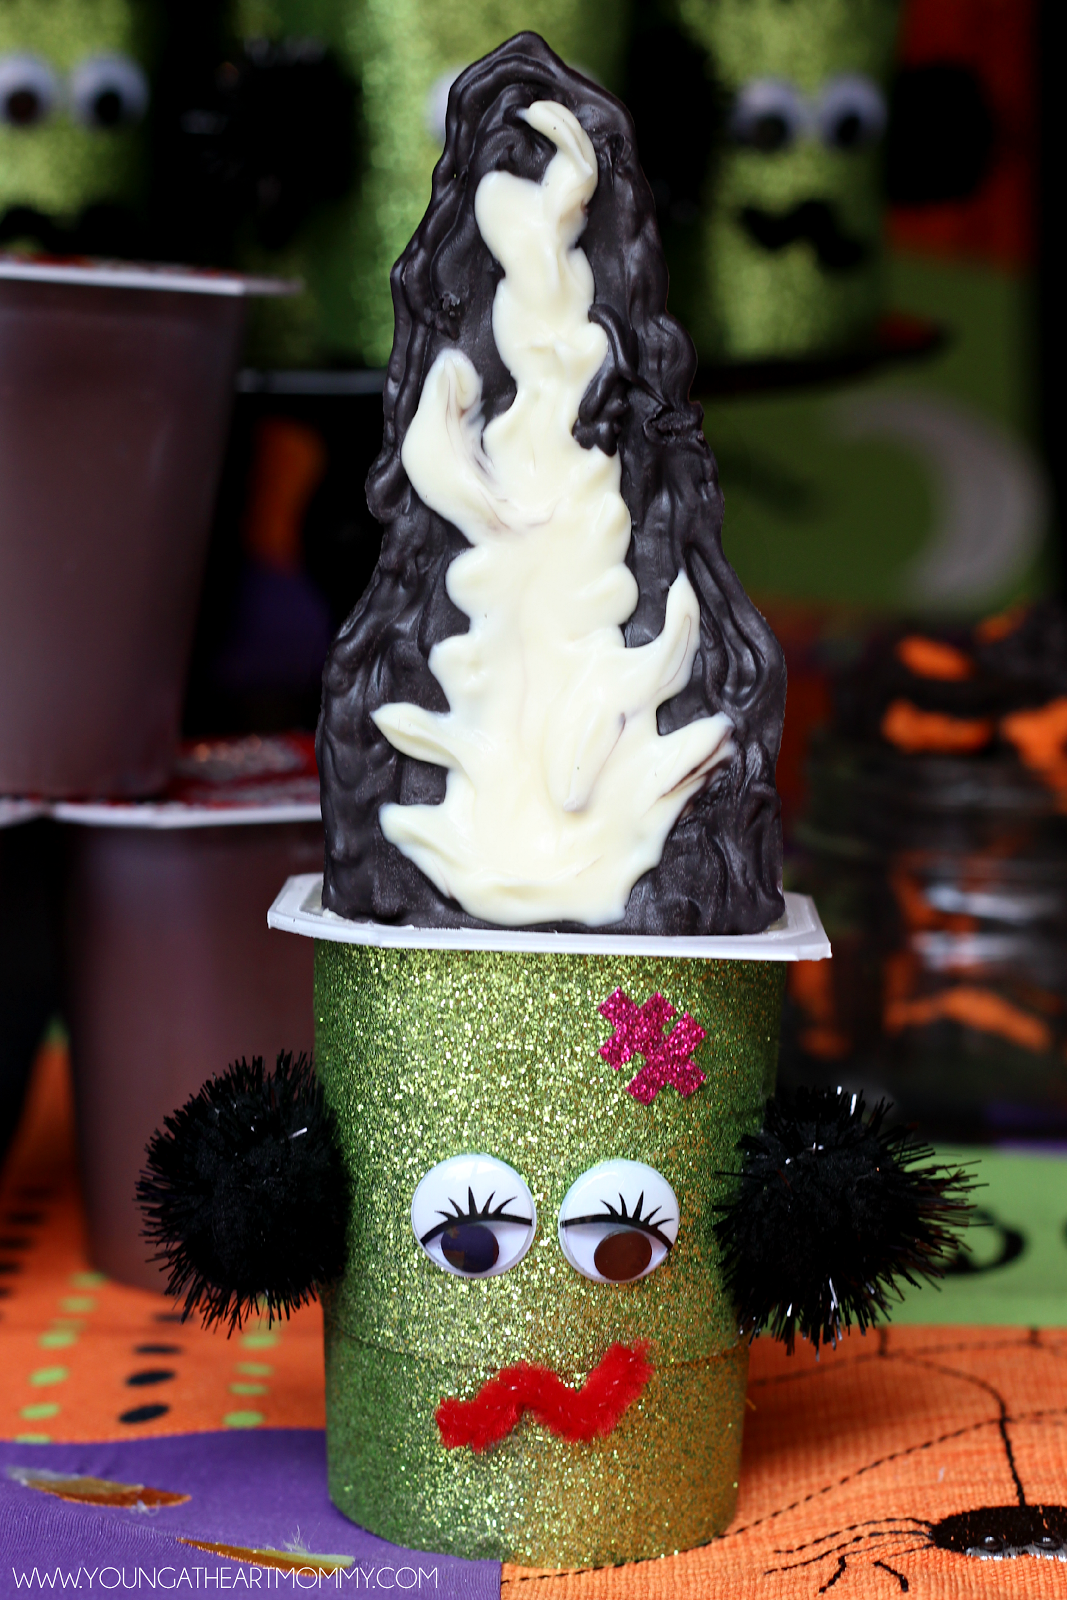 Bride of Frankenstein Pudding Cups